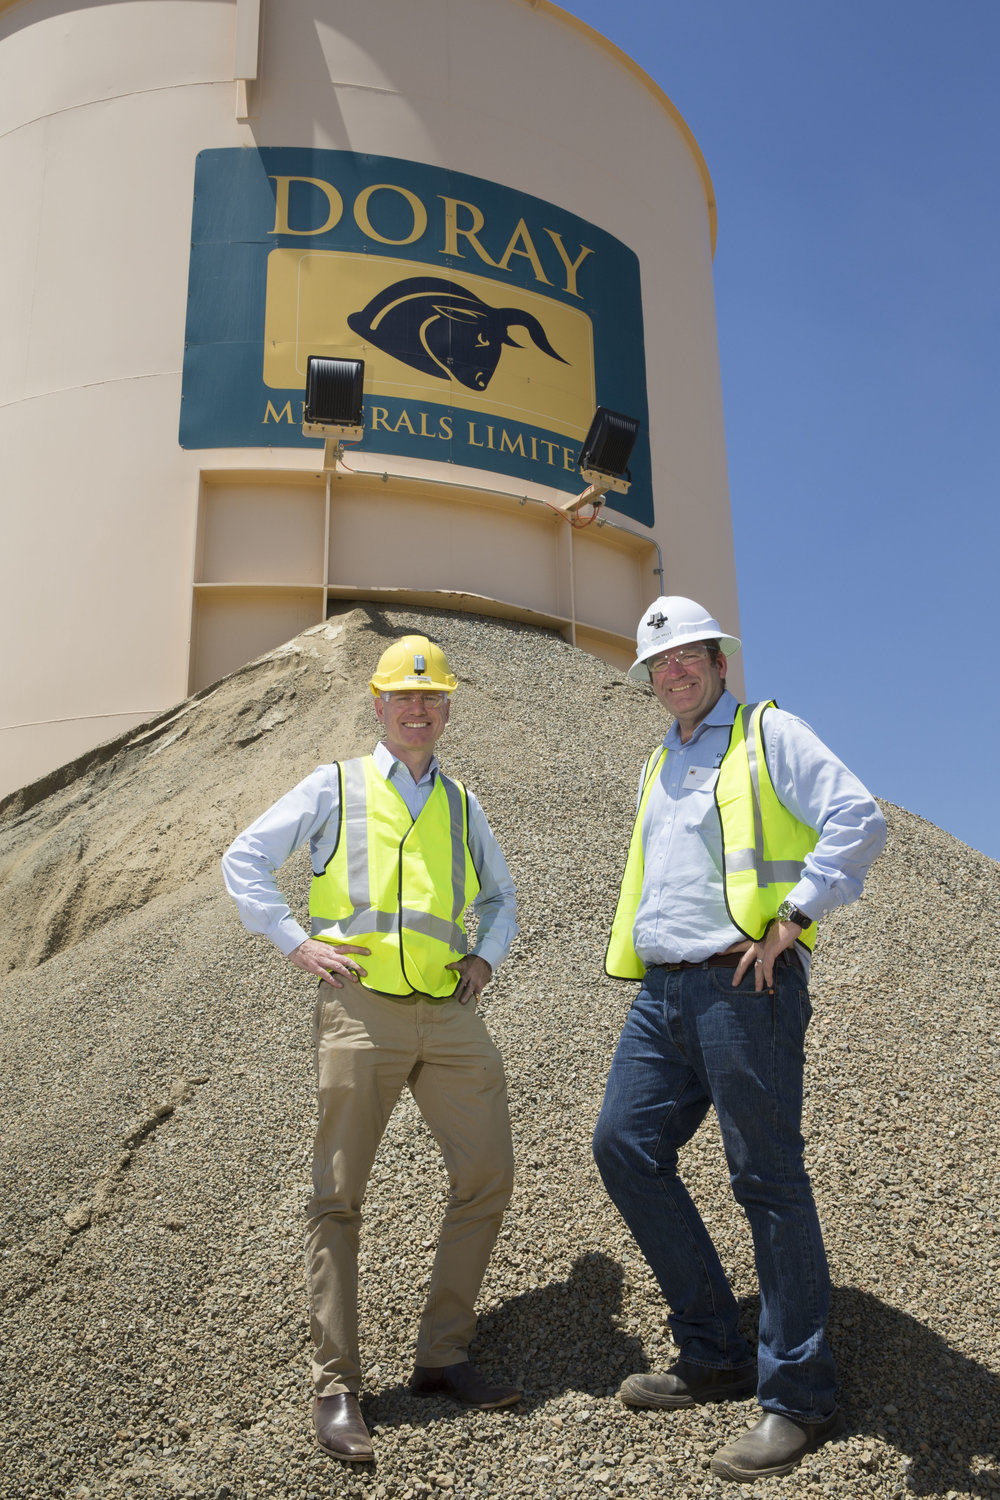 Doray Managing Director, Allan Kelly with Minister for Mines & Petroleum, the Hon Sean L'Estrange MLA.